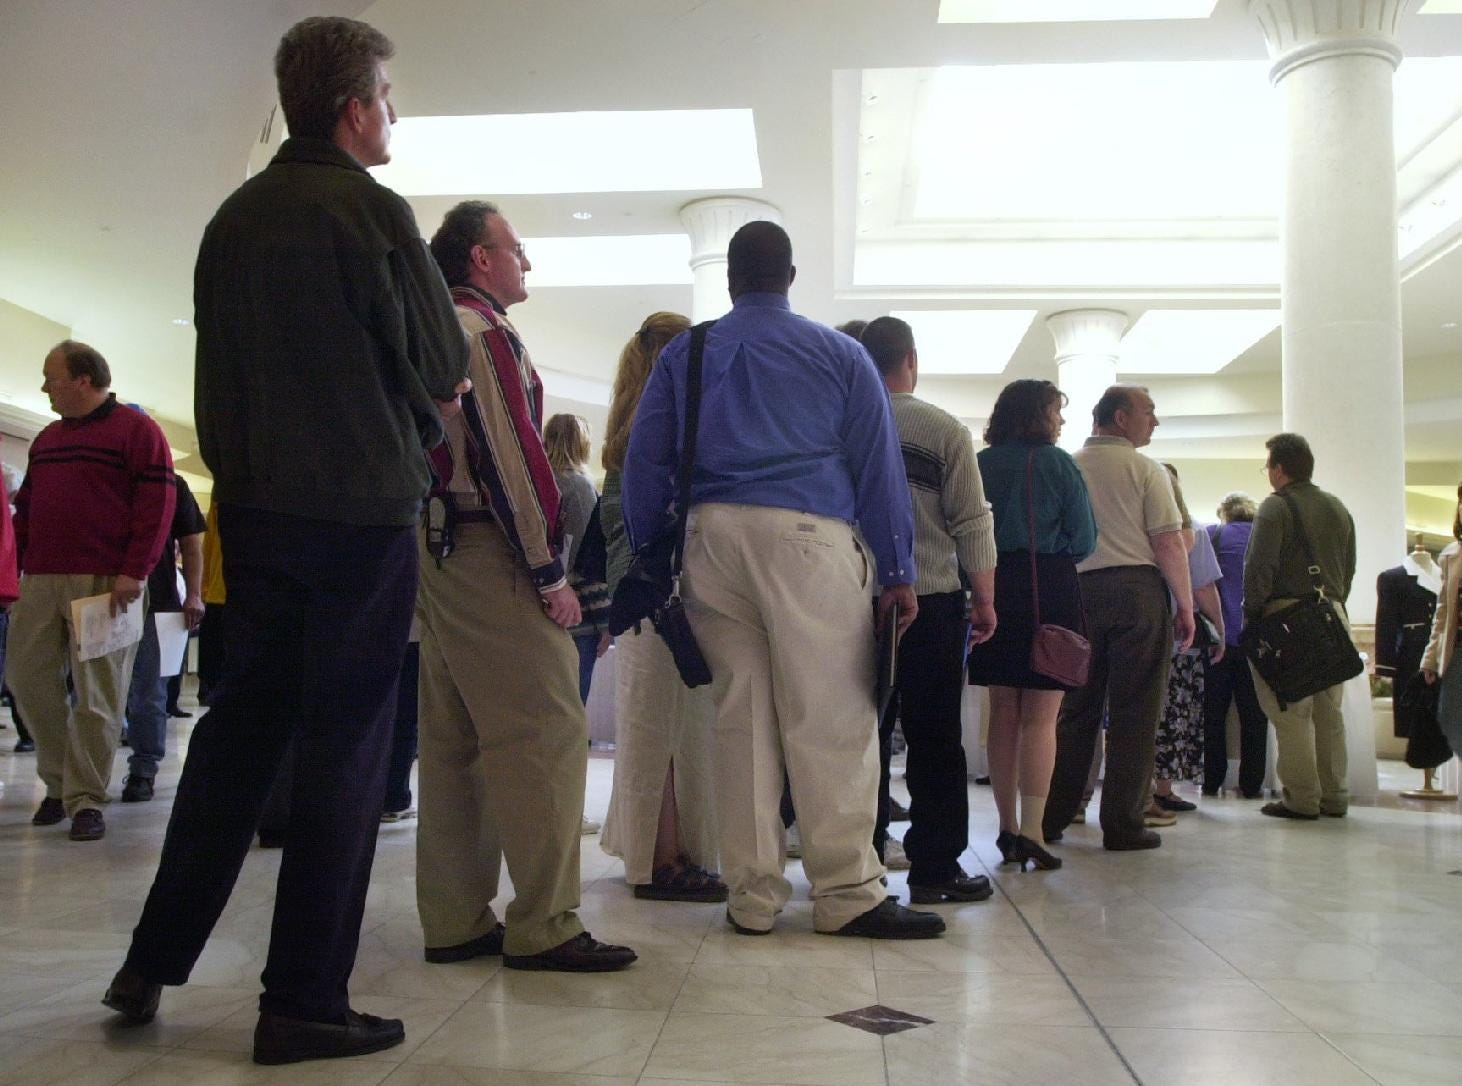 The lines were long in front of the NLX Corp. table for the sixth annual Southern Tier Job Fair held on May 21, 2002 at the Oakdale Mall as people waited to get job information and turn in their resumes to the Town of Union company, one of 53 employers represented that year.